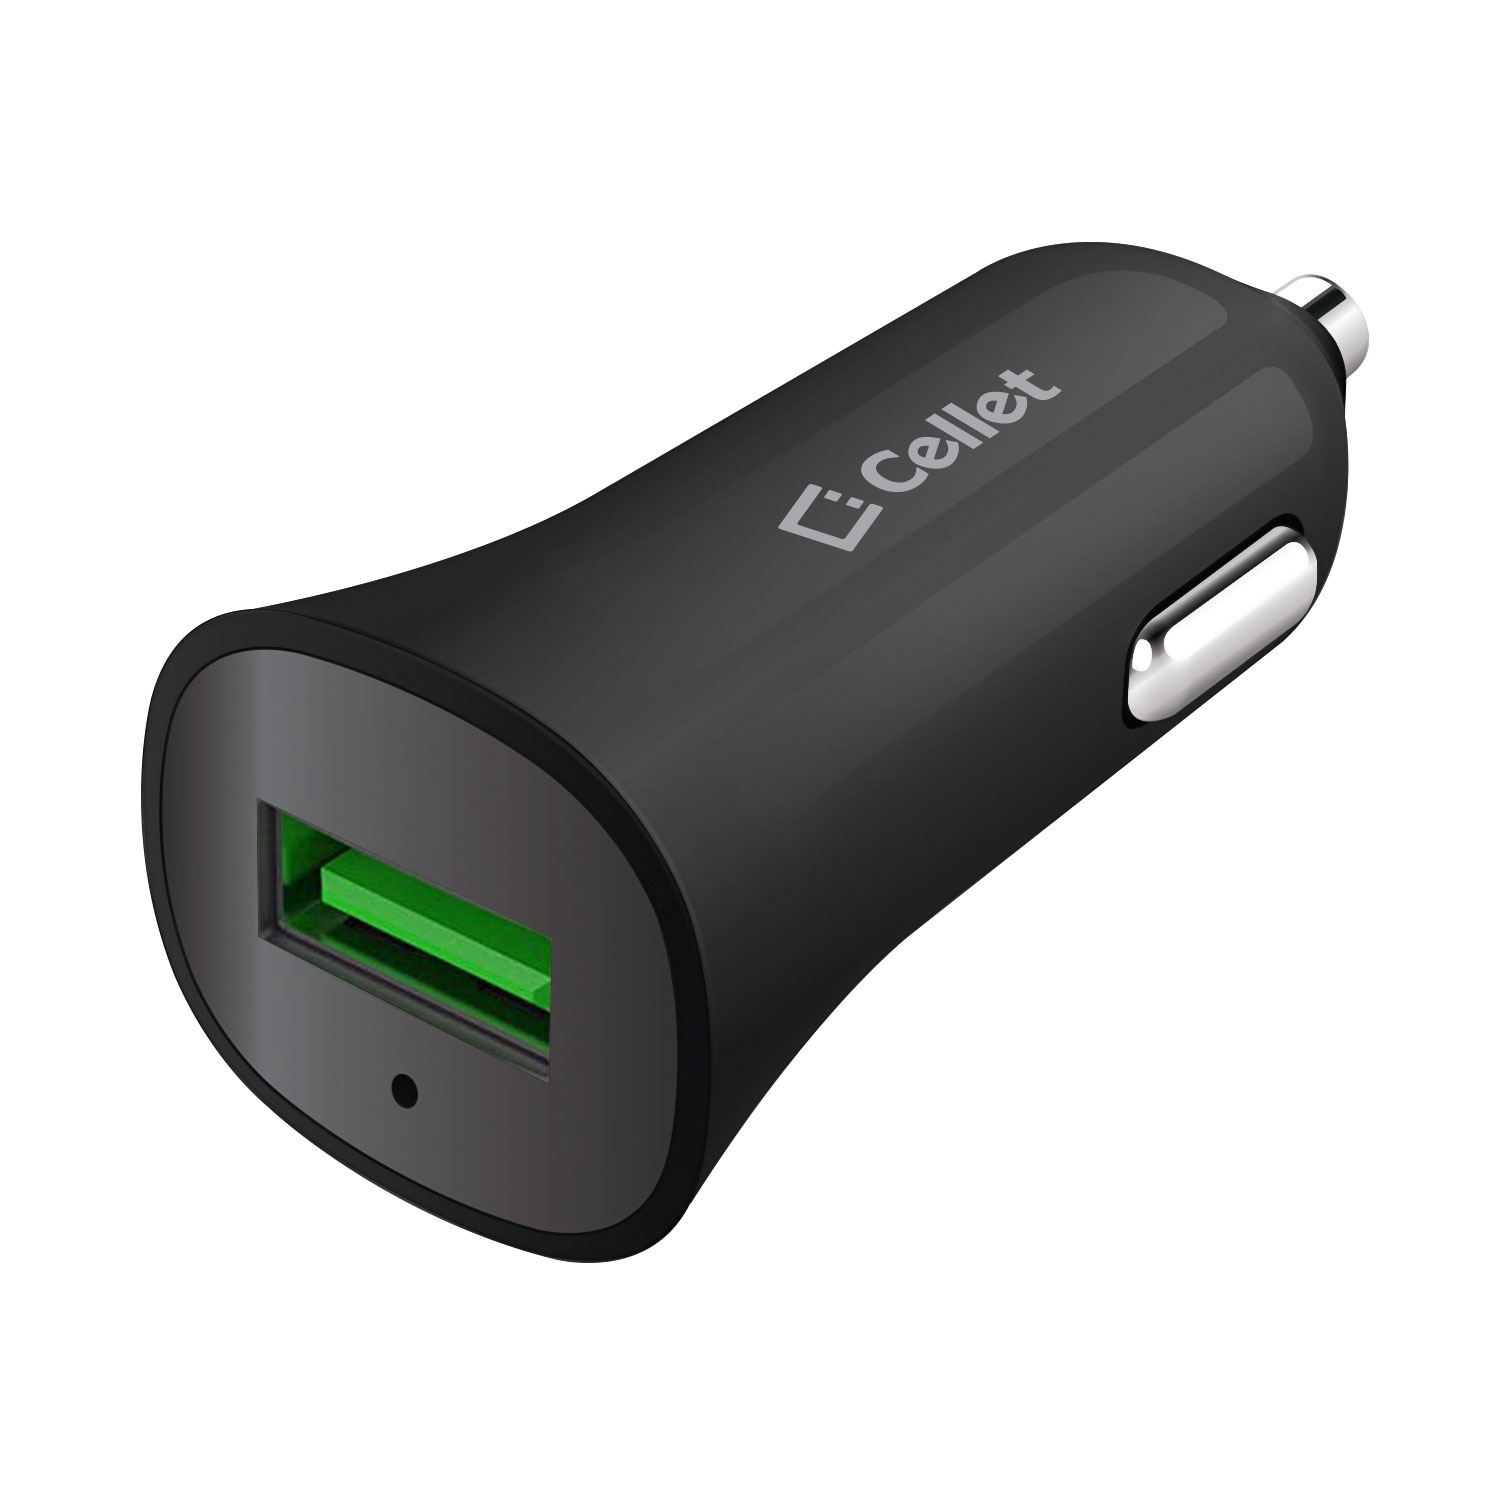 Pantech Marauder Car Charger Quick Charge 3.0 Black 3.3ft